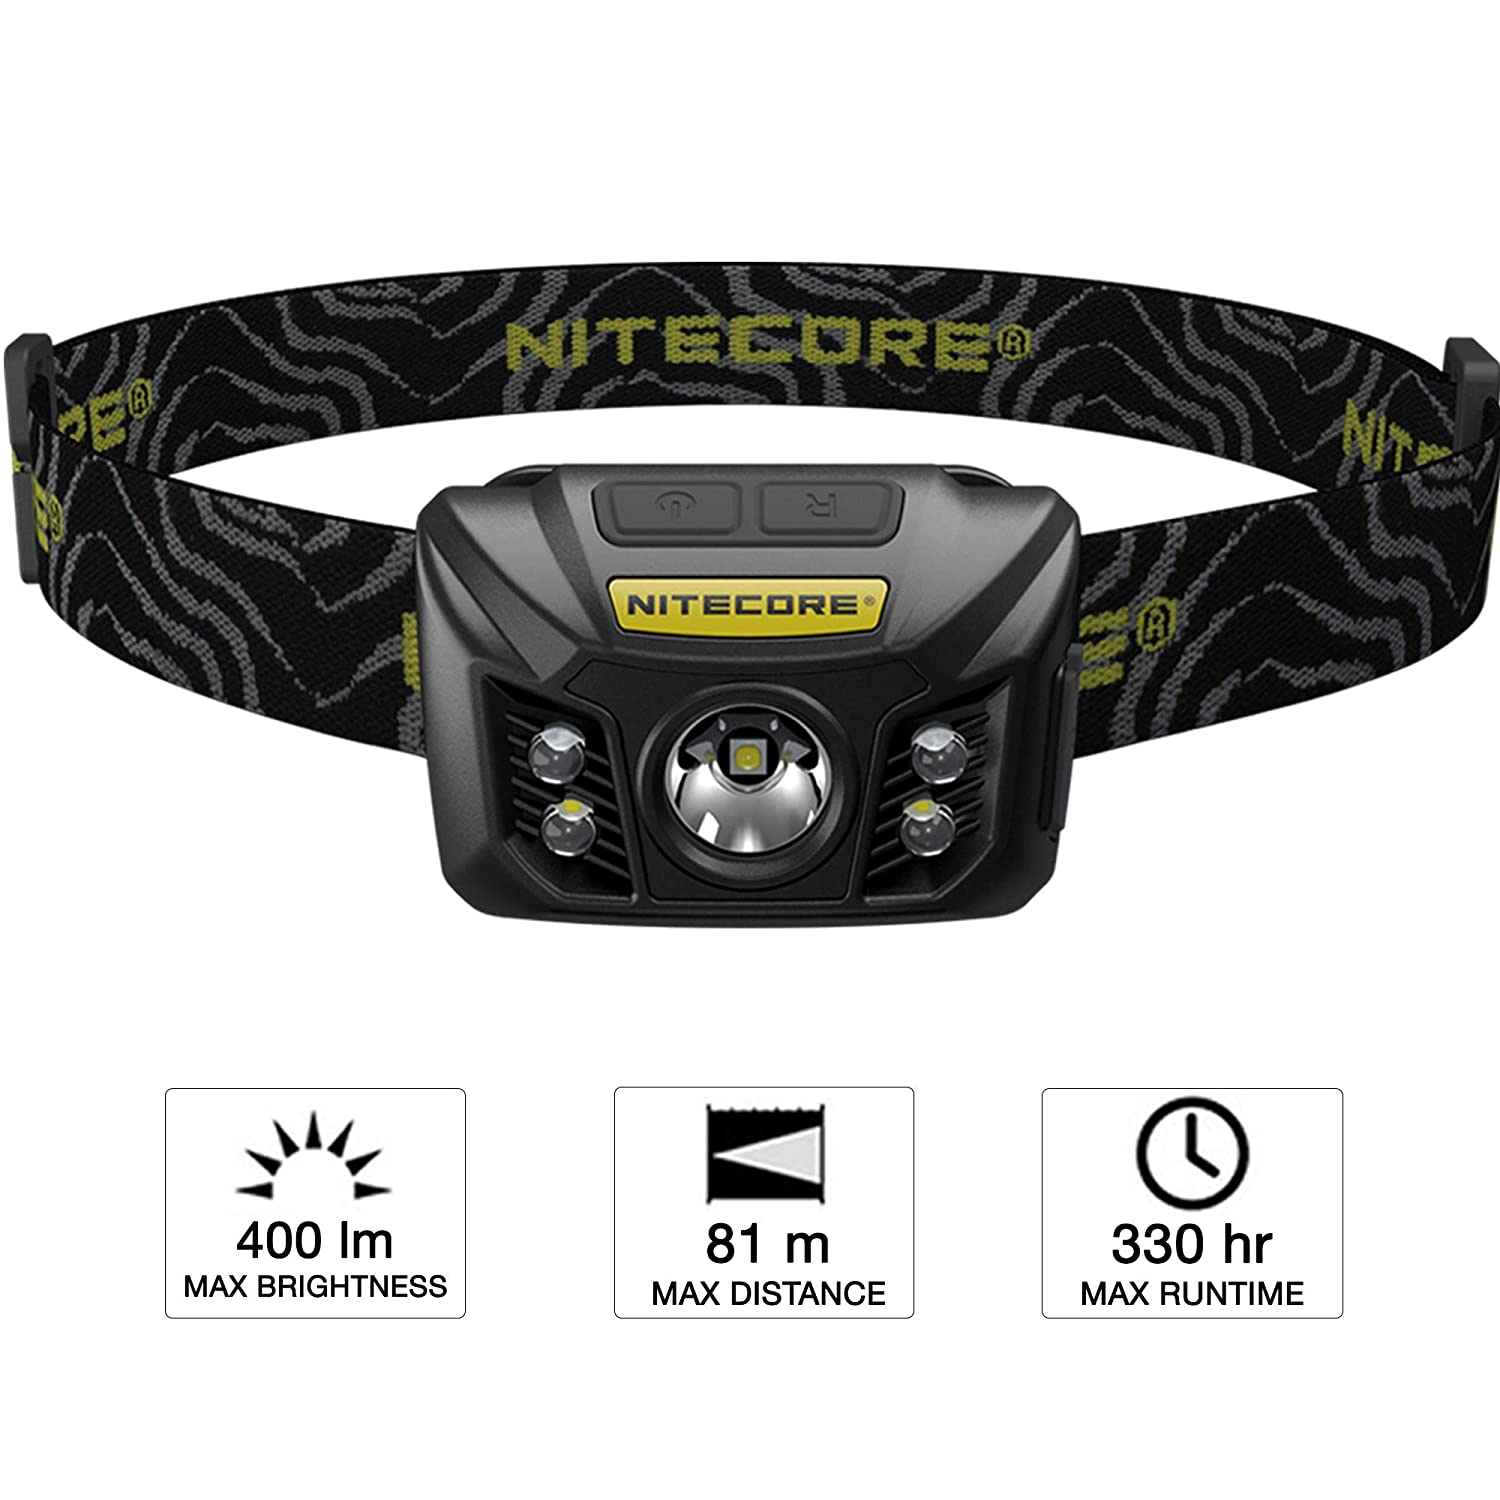 Nitecore LED Head Torch USB Rechargeable Waterproof Super Bright CREE 400 Lumens plus Red Light with Built-in Li-Ion Battery IP67 Dust and Water Resistant Headlamp NU30 @ Manventure UK